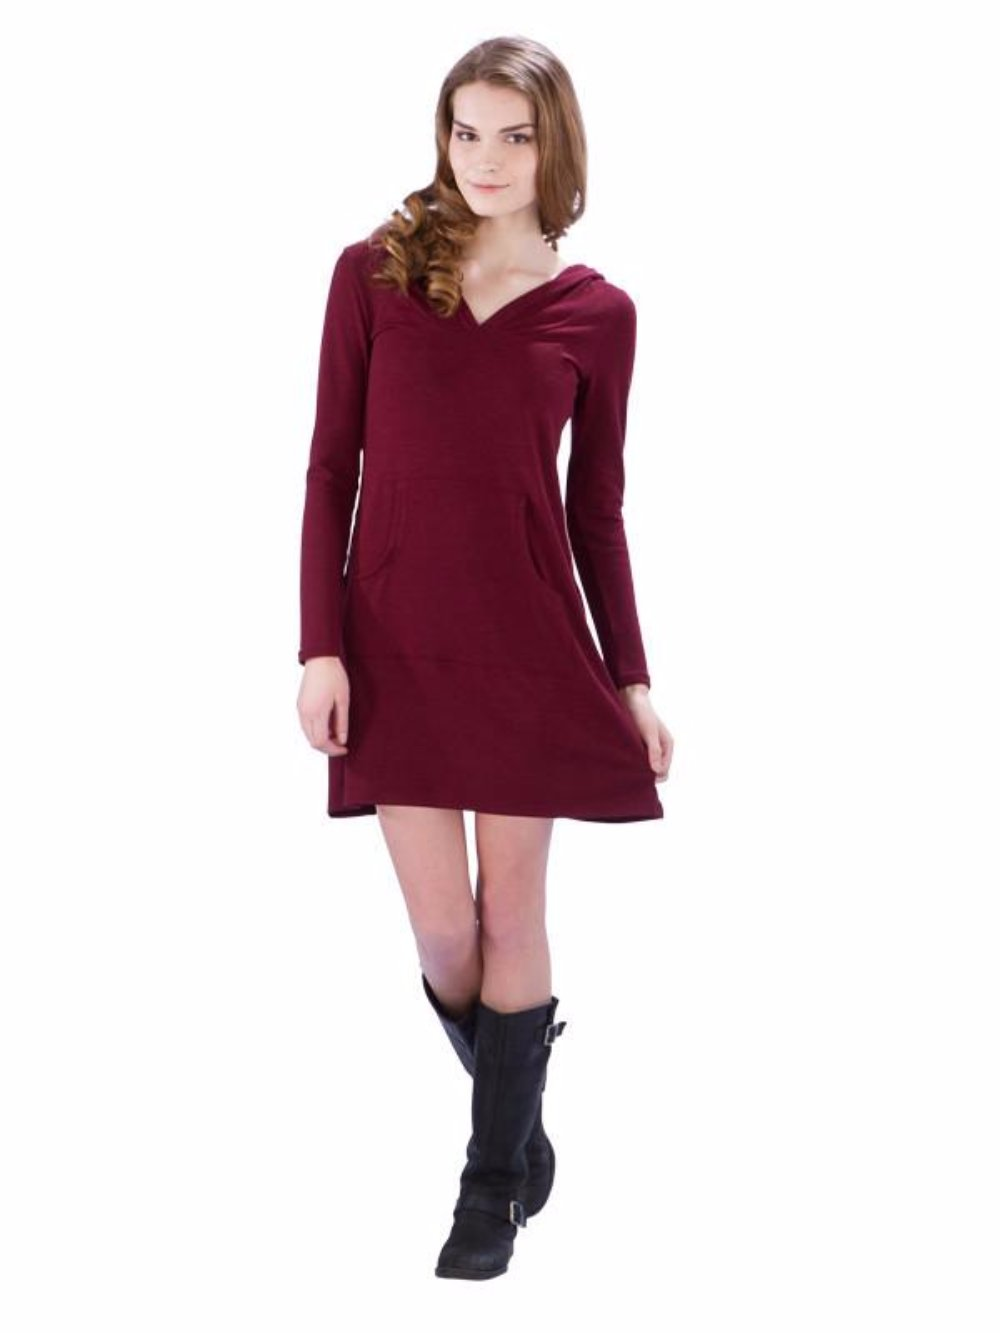 Hoodie Sweater Dress with Kangaroo Pocket and V-Neck - Maroon Sweater Dress